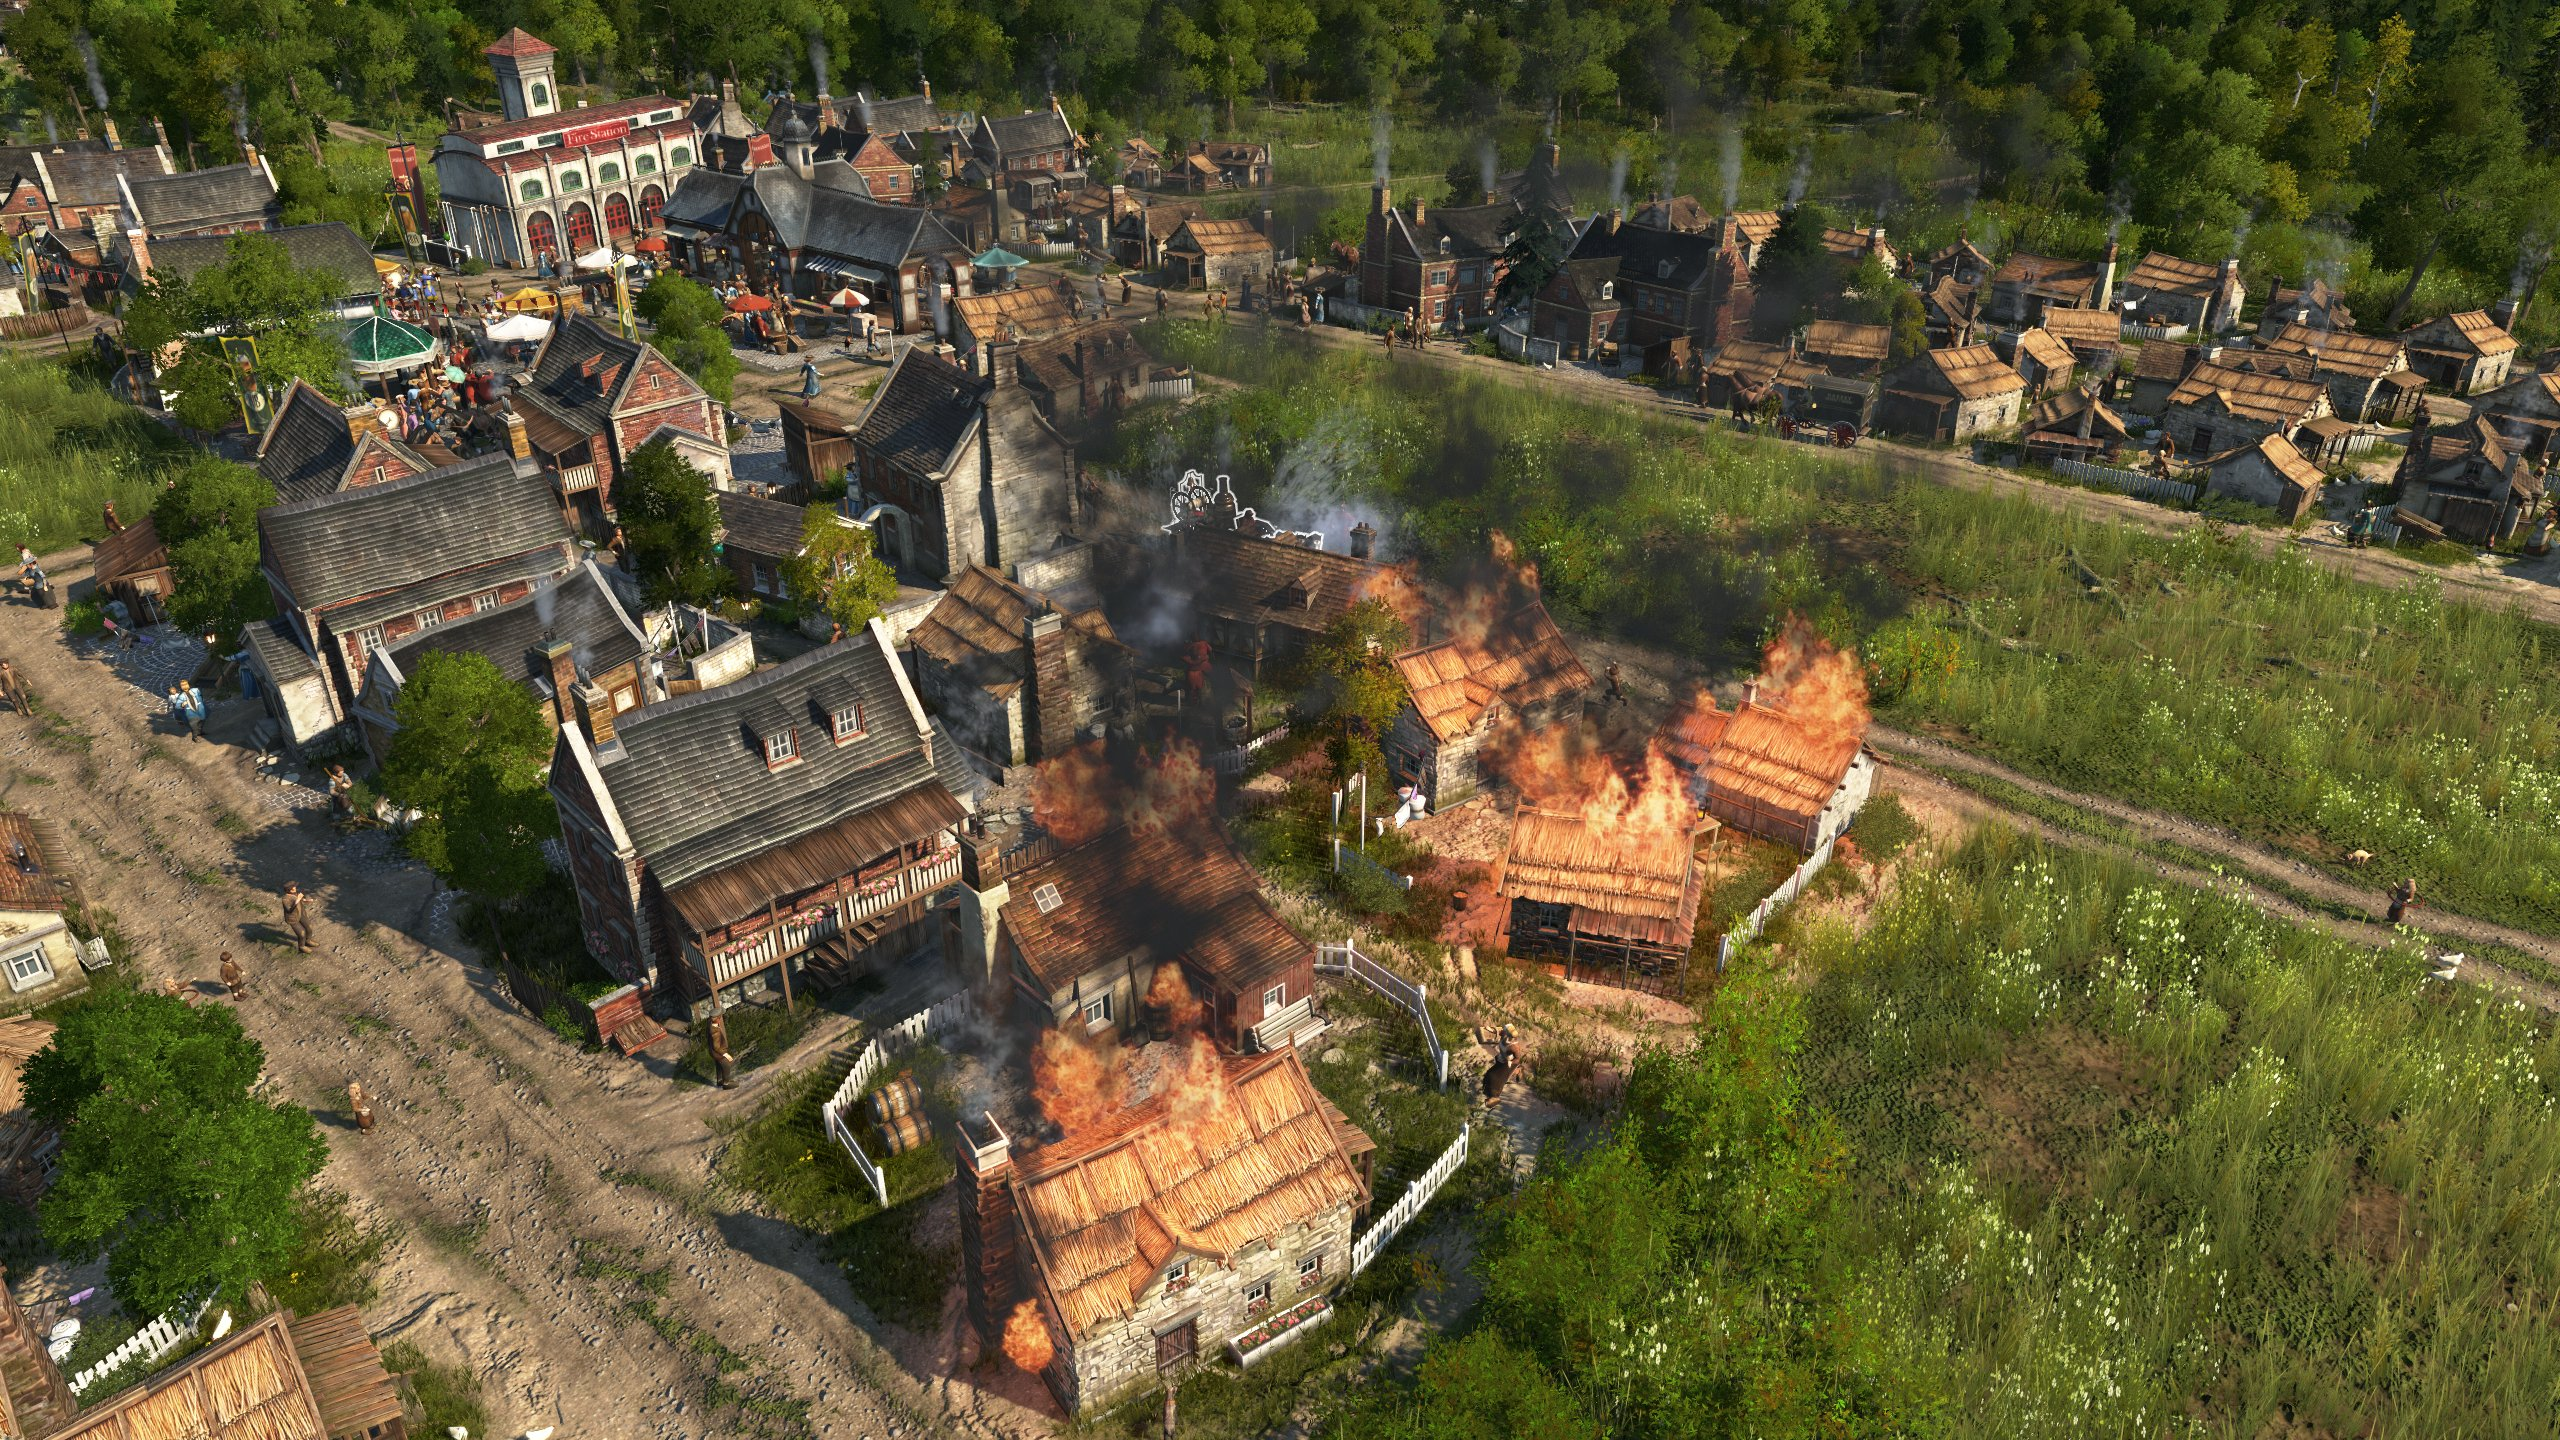 Screenshot for the game Anno 1800: Complete Edition (2019) download torrent RePack from R. G. Mechanics